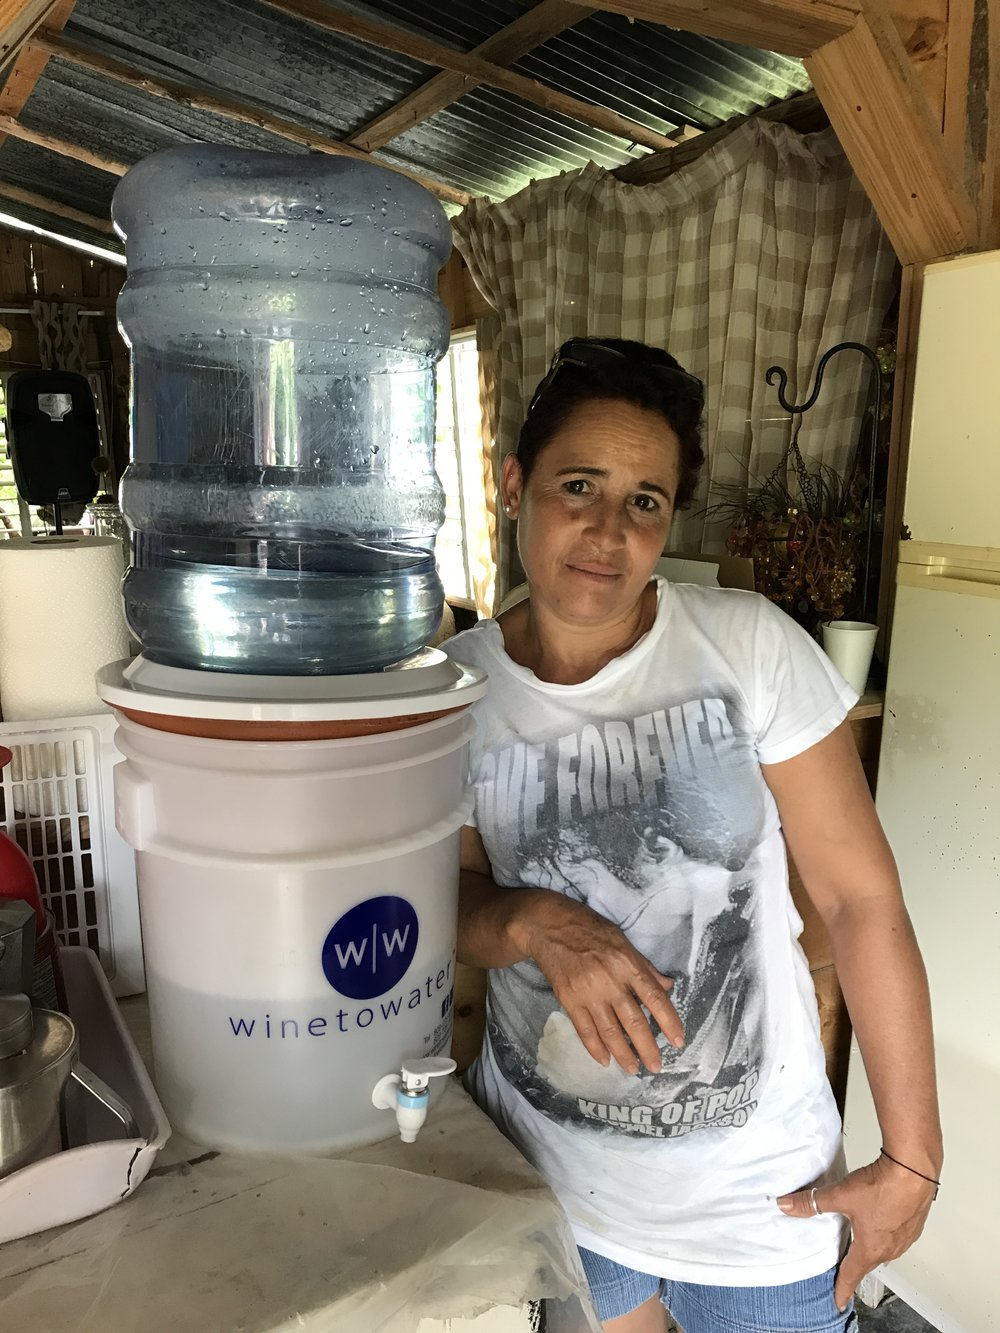 Utilizing a ceramic water filter in the Dominican Republic